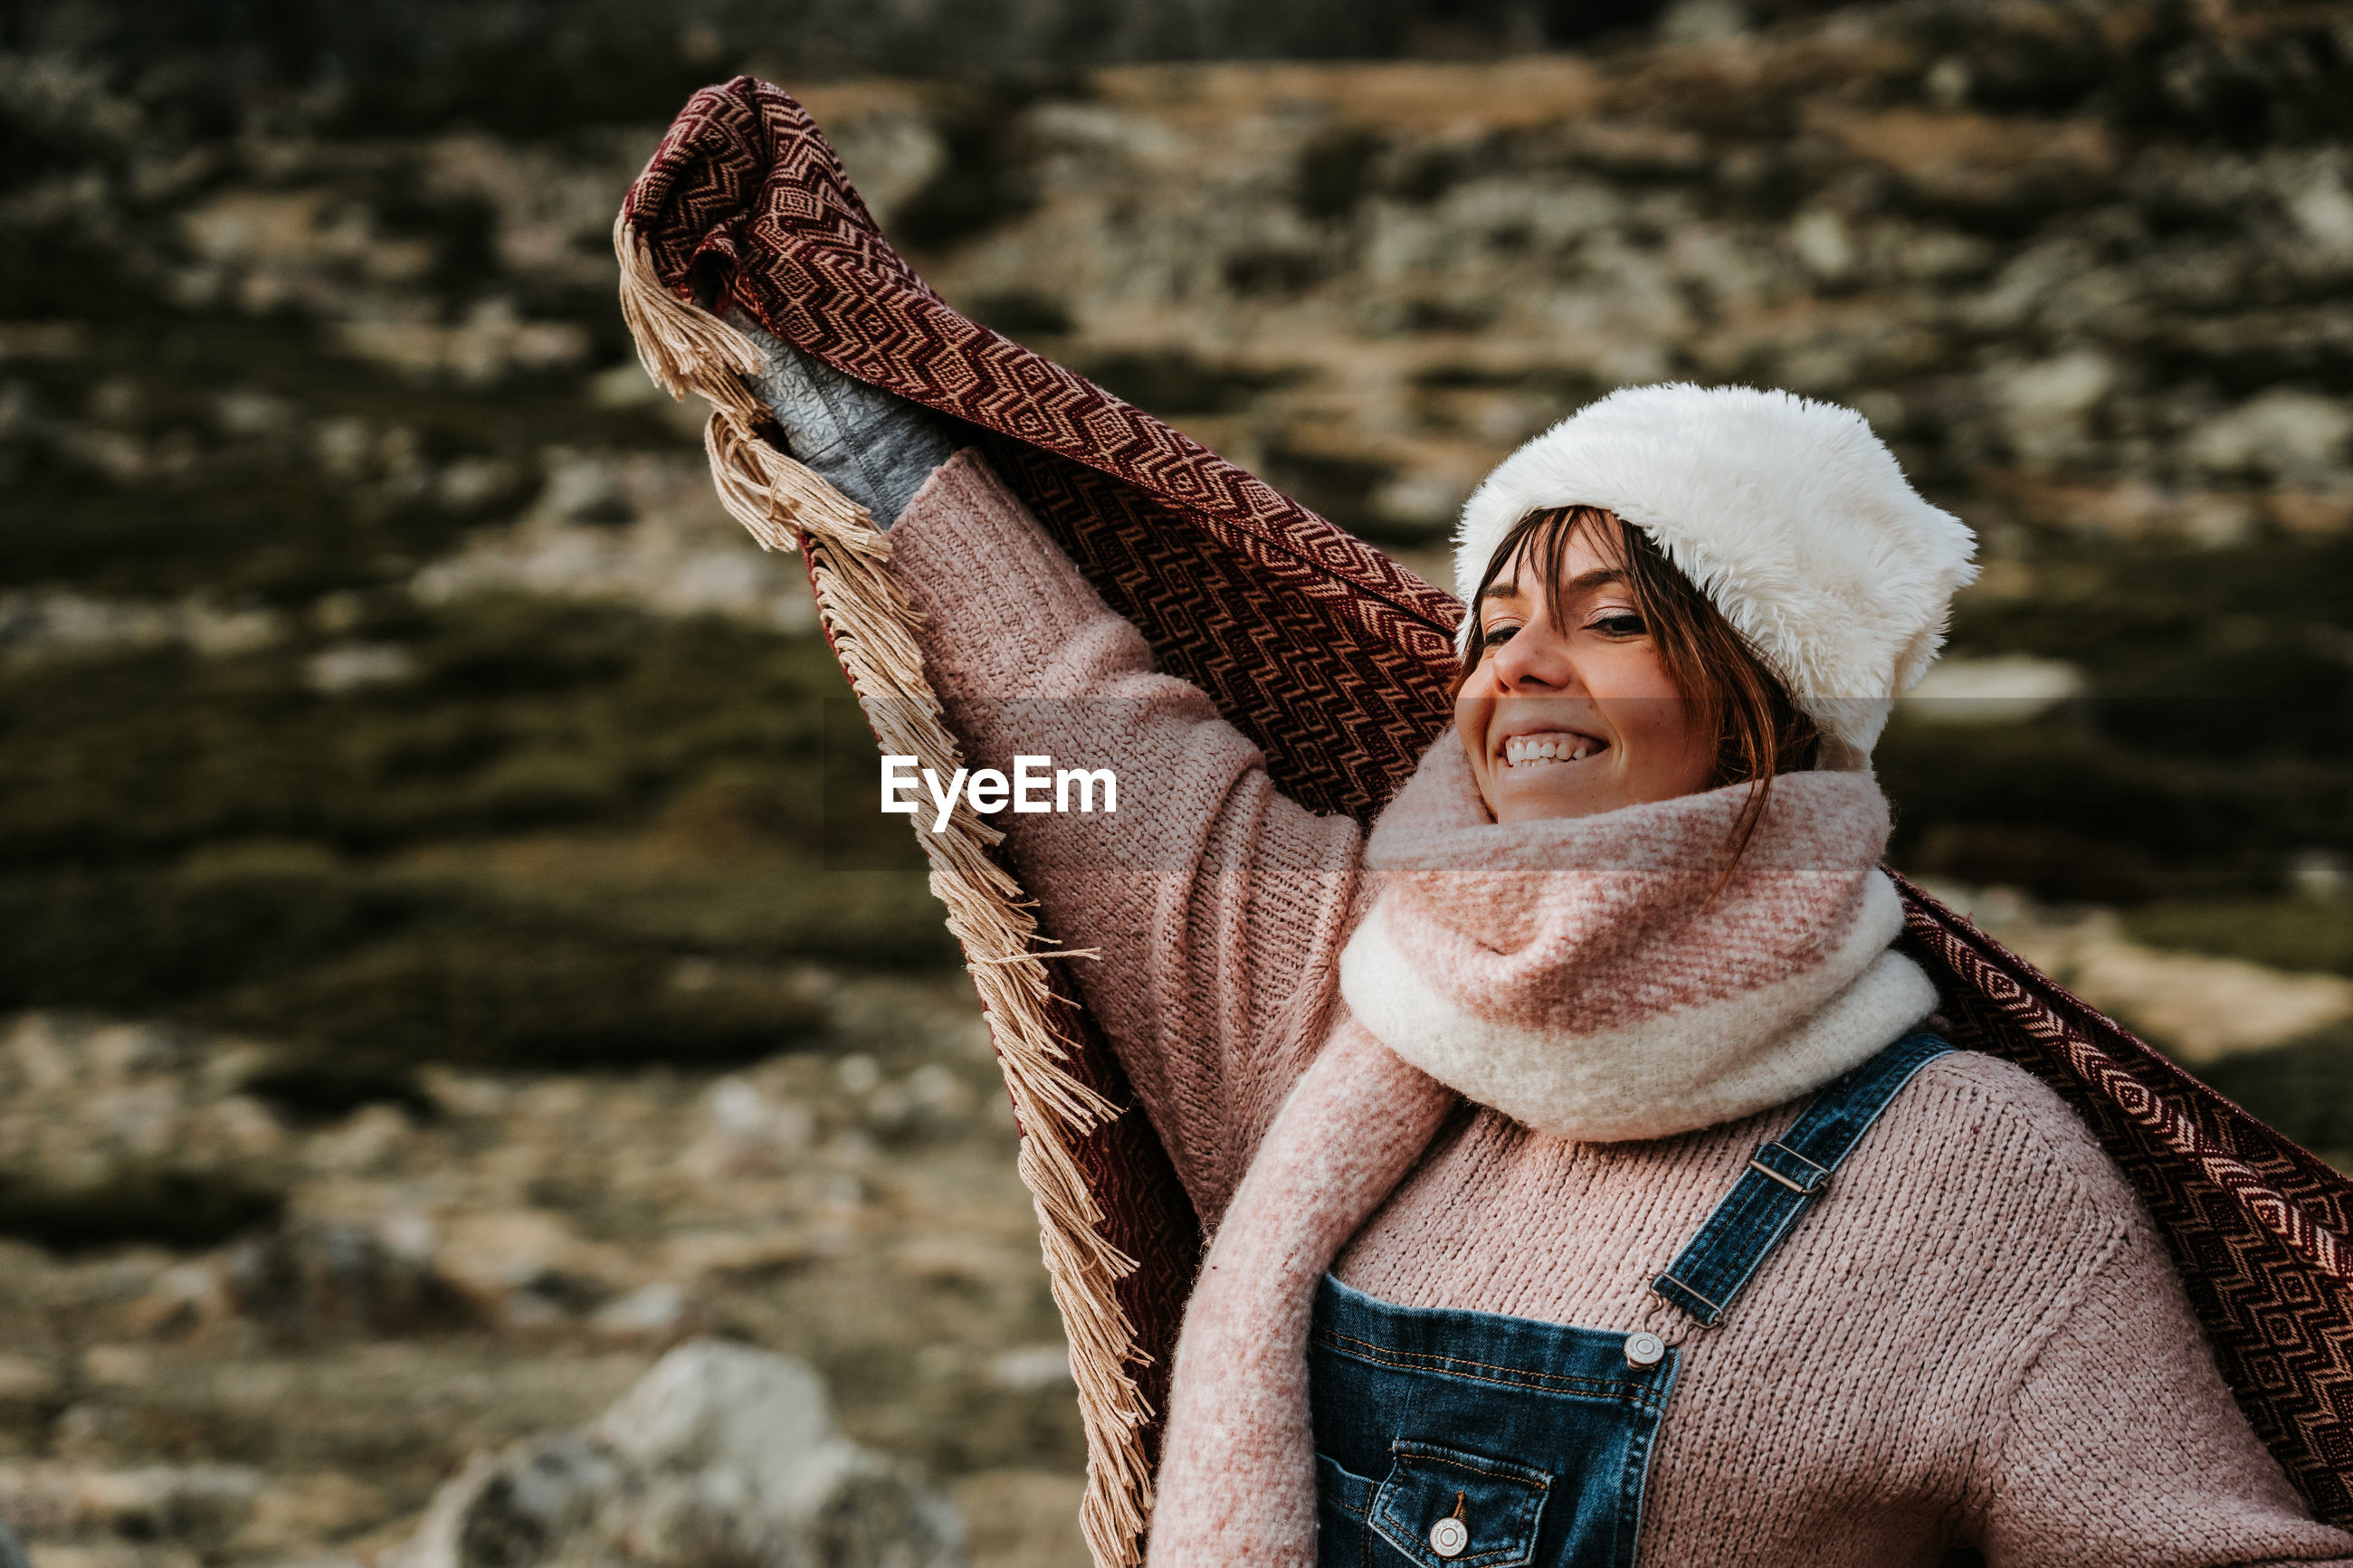 Smiling woman looking away while standing in warm clothing on mountain